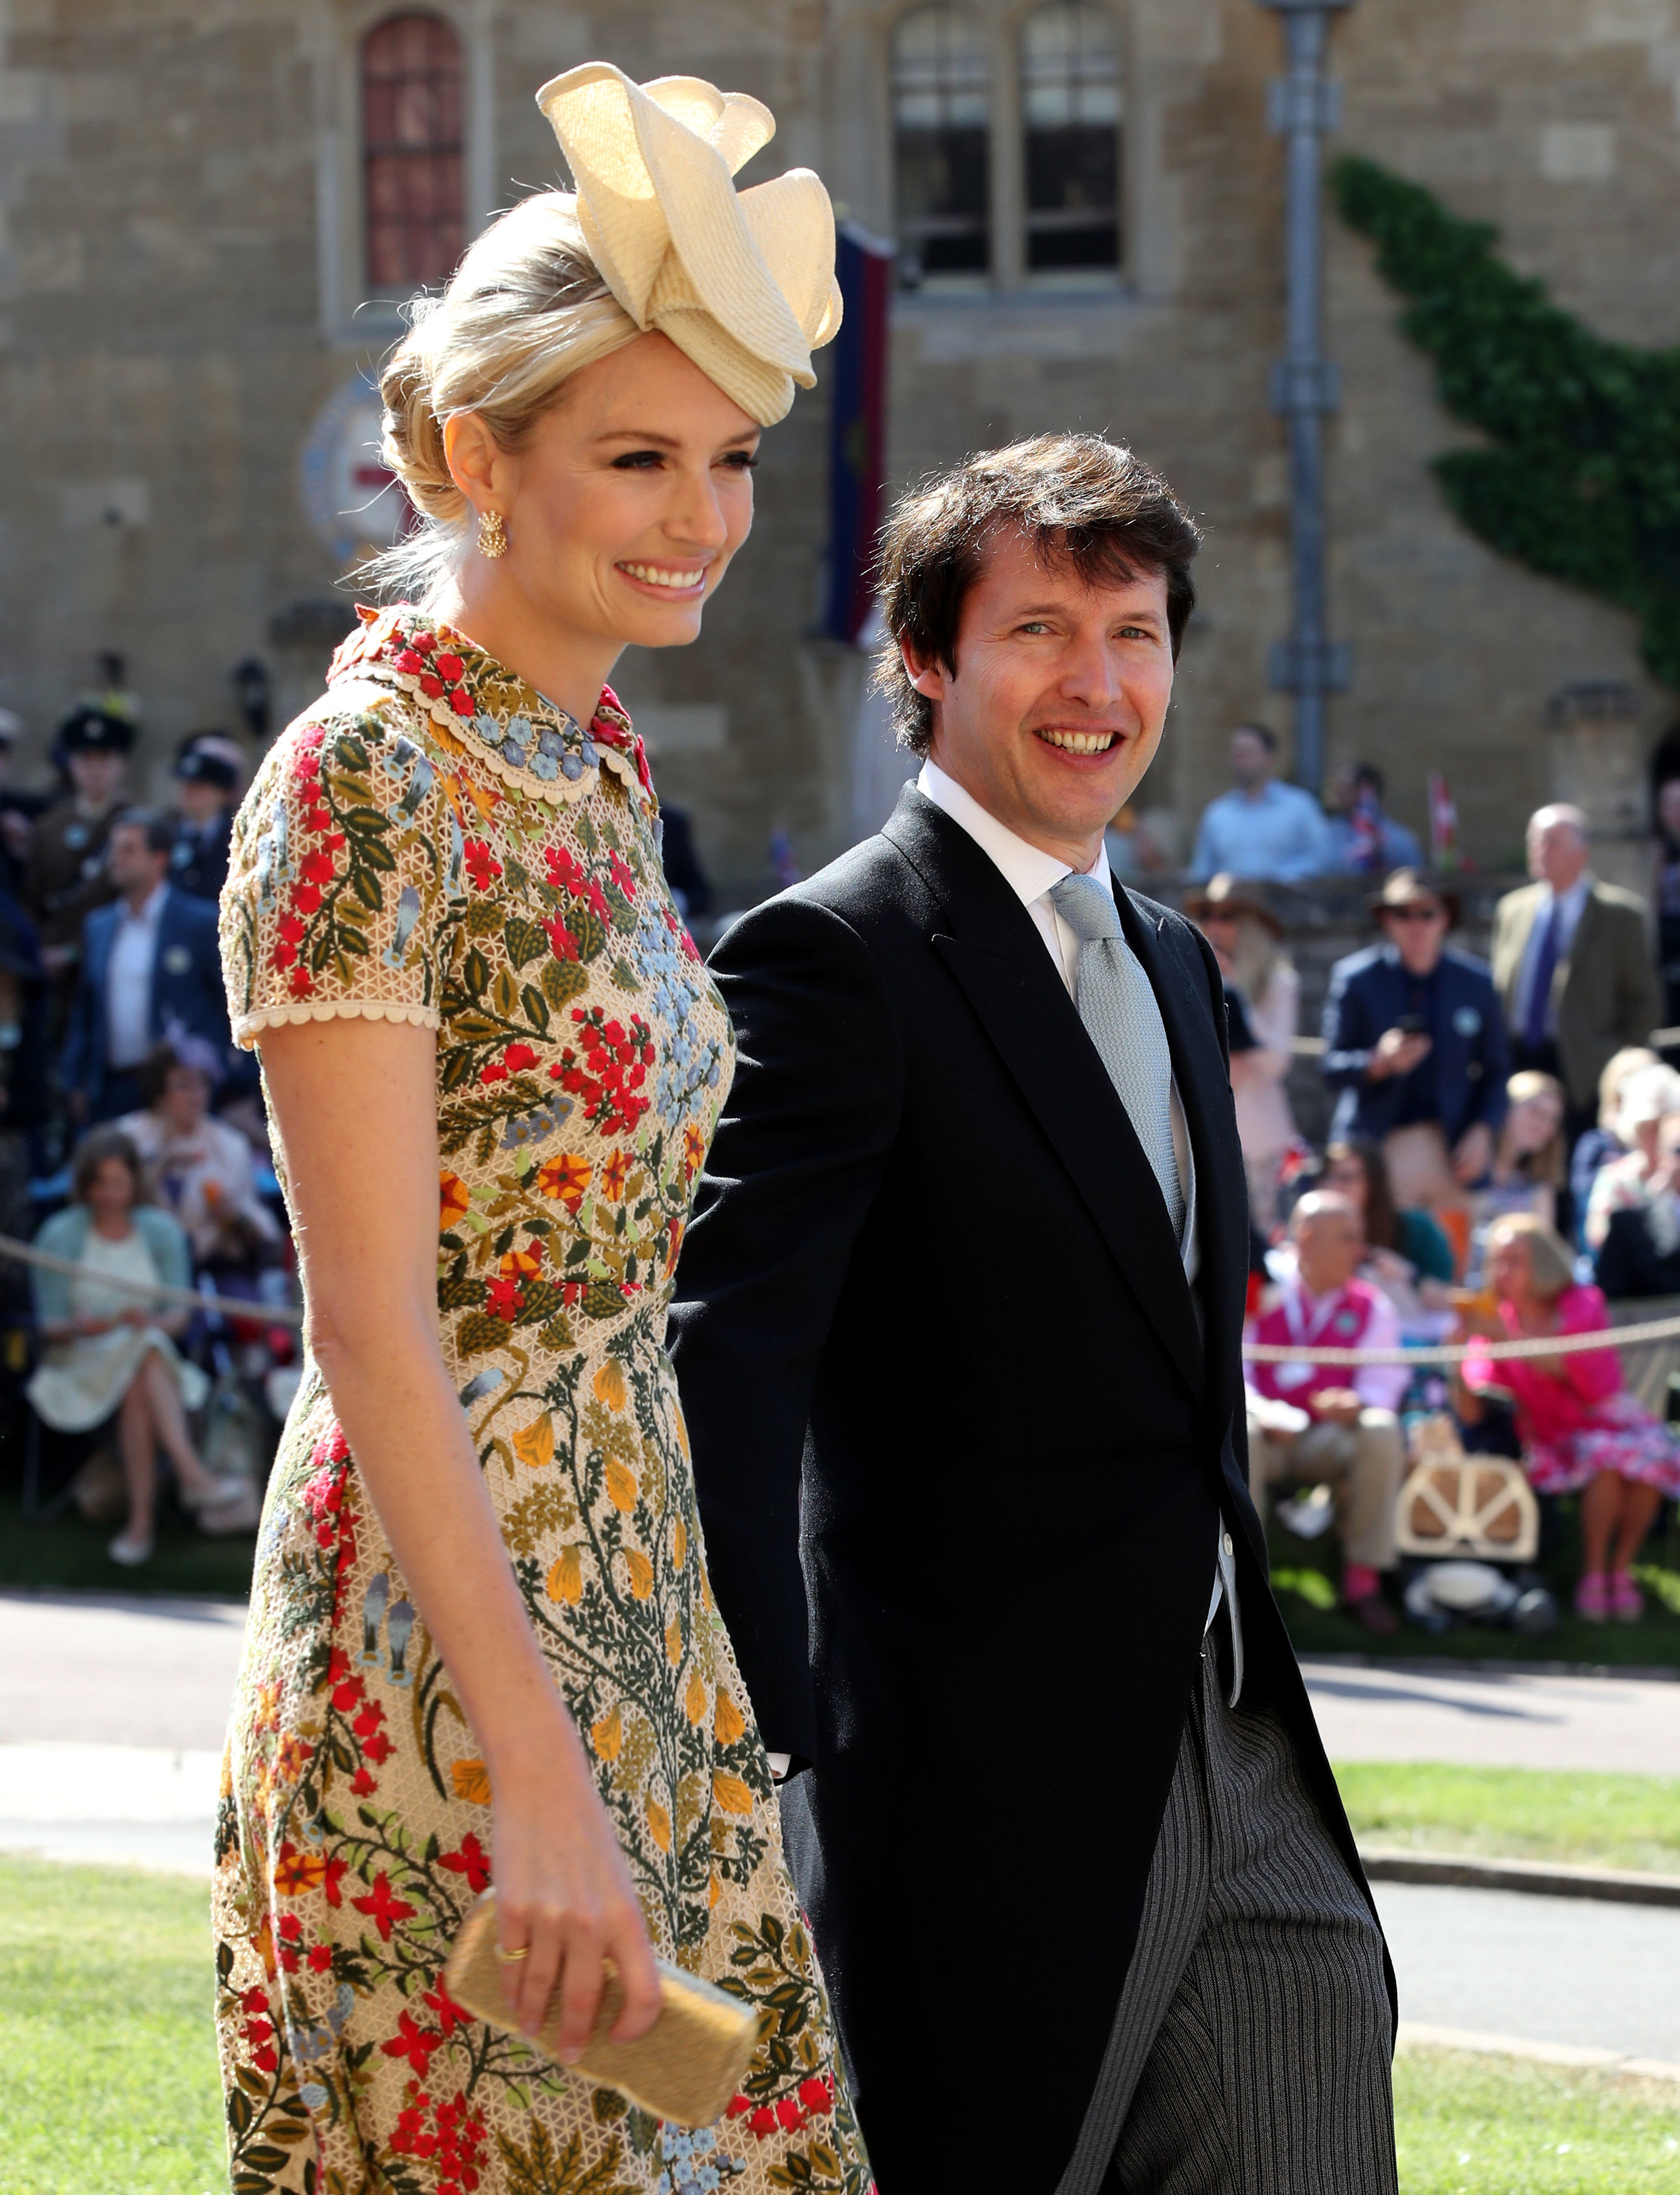 James Blunt and Sofia Wellesley royal wedding 2018